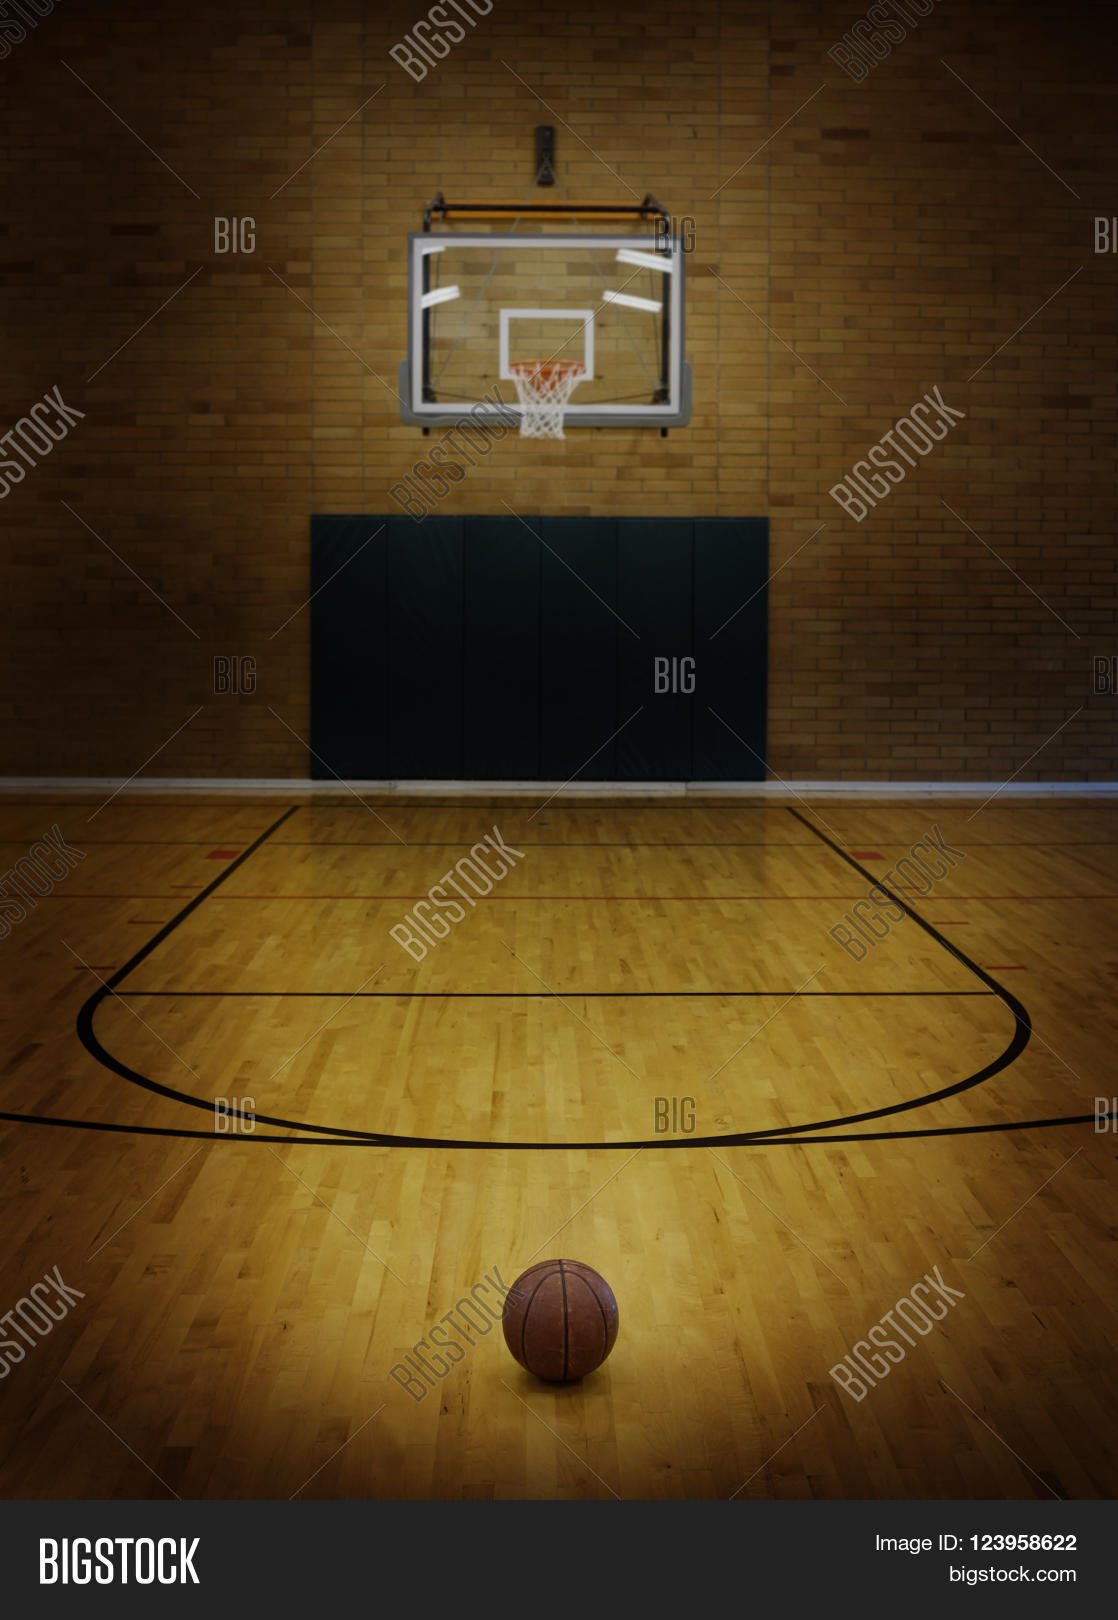 Basketball on floor of empty basketball court stock photo for Custom basketball court cost